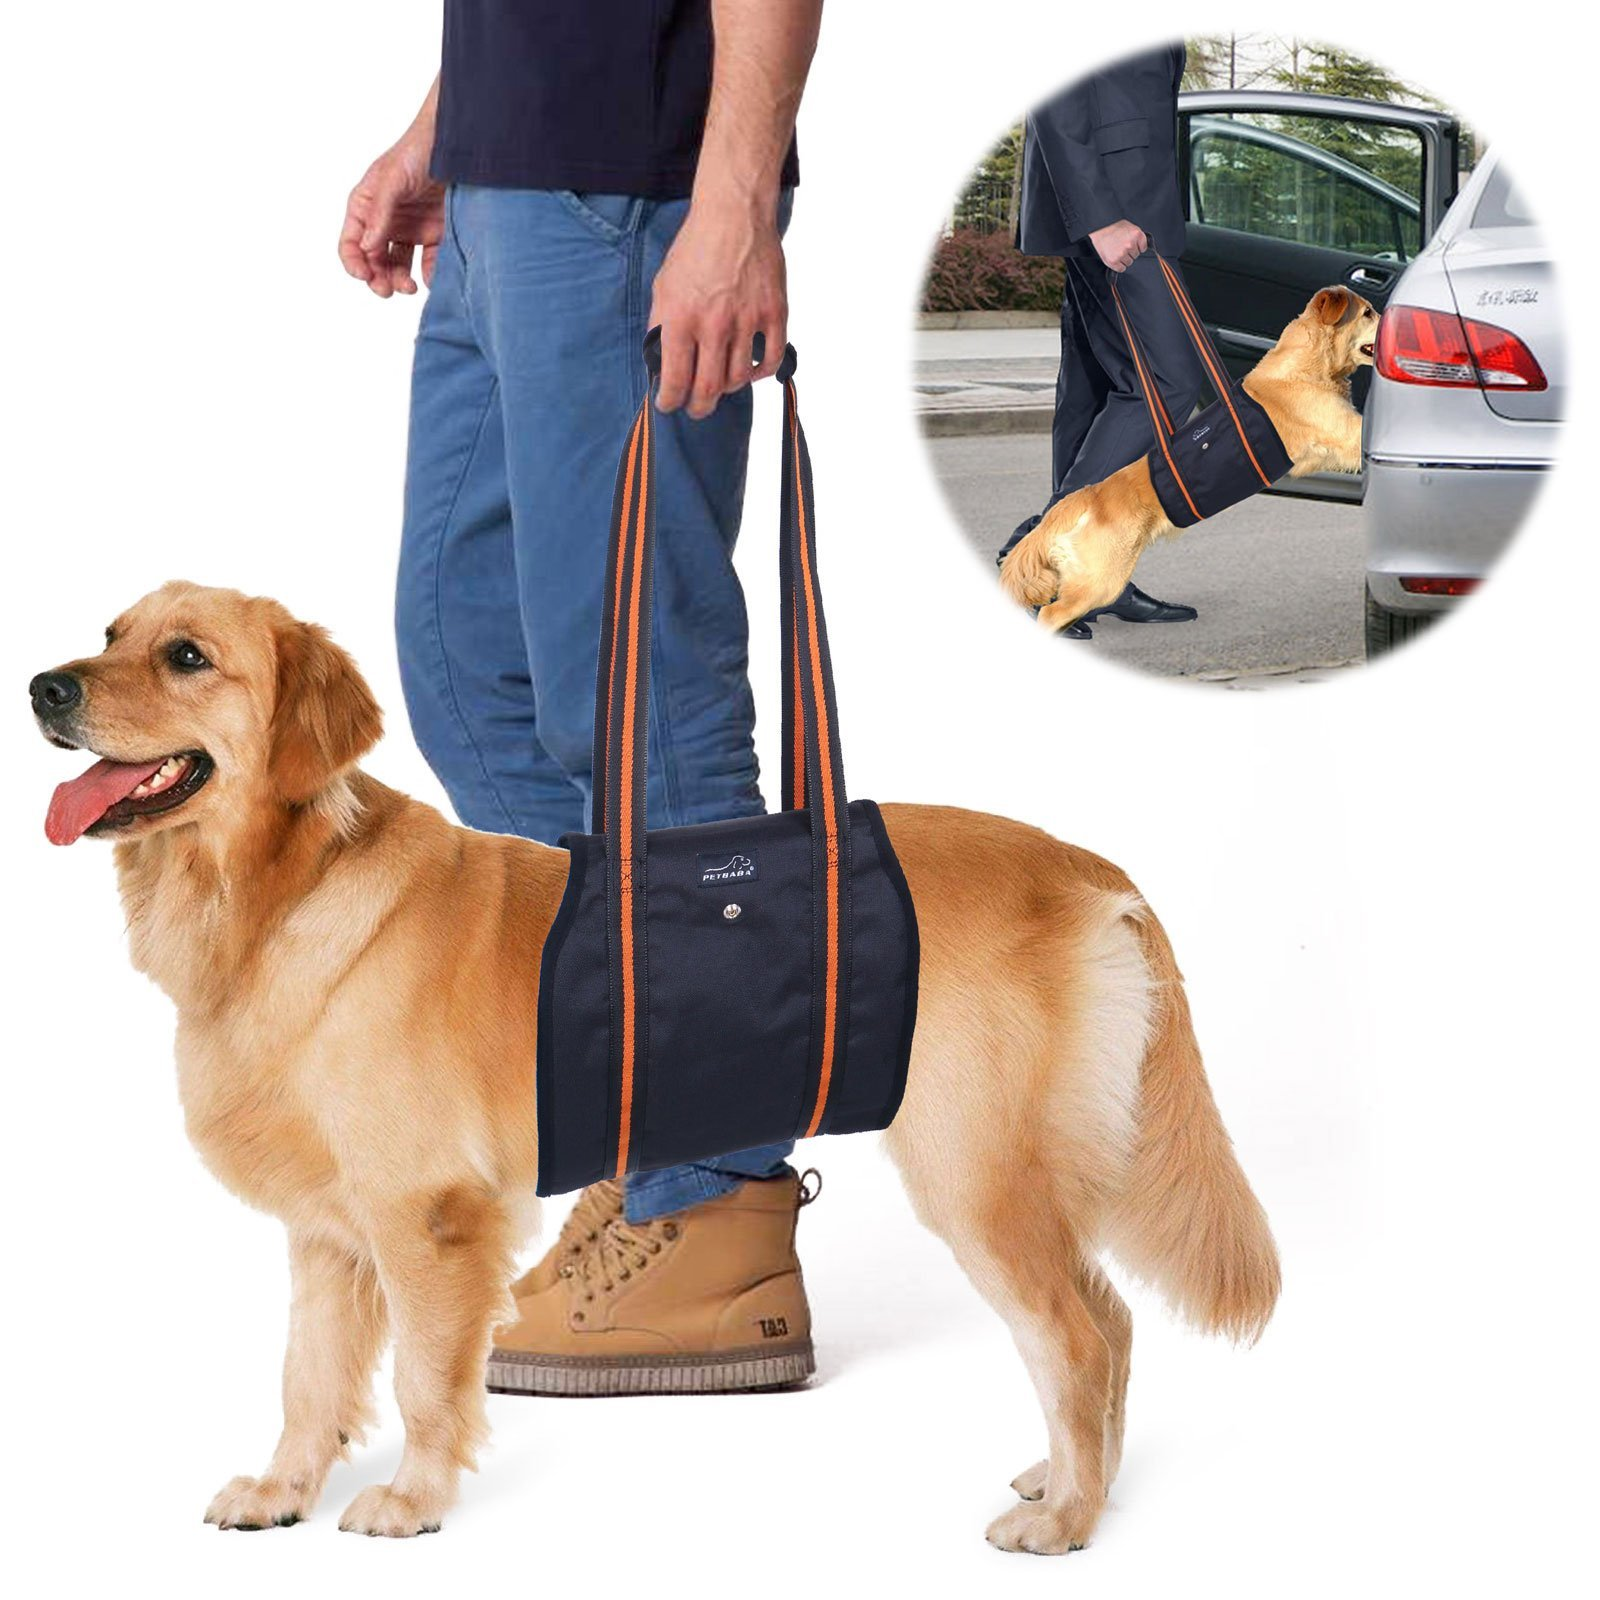 Dog Lift Harness PETBABA Mobility Rehabilitation Sling Support Harness with H